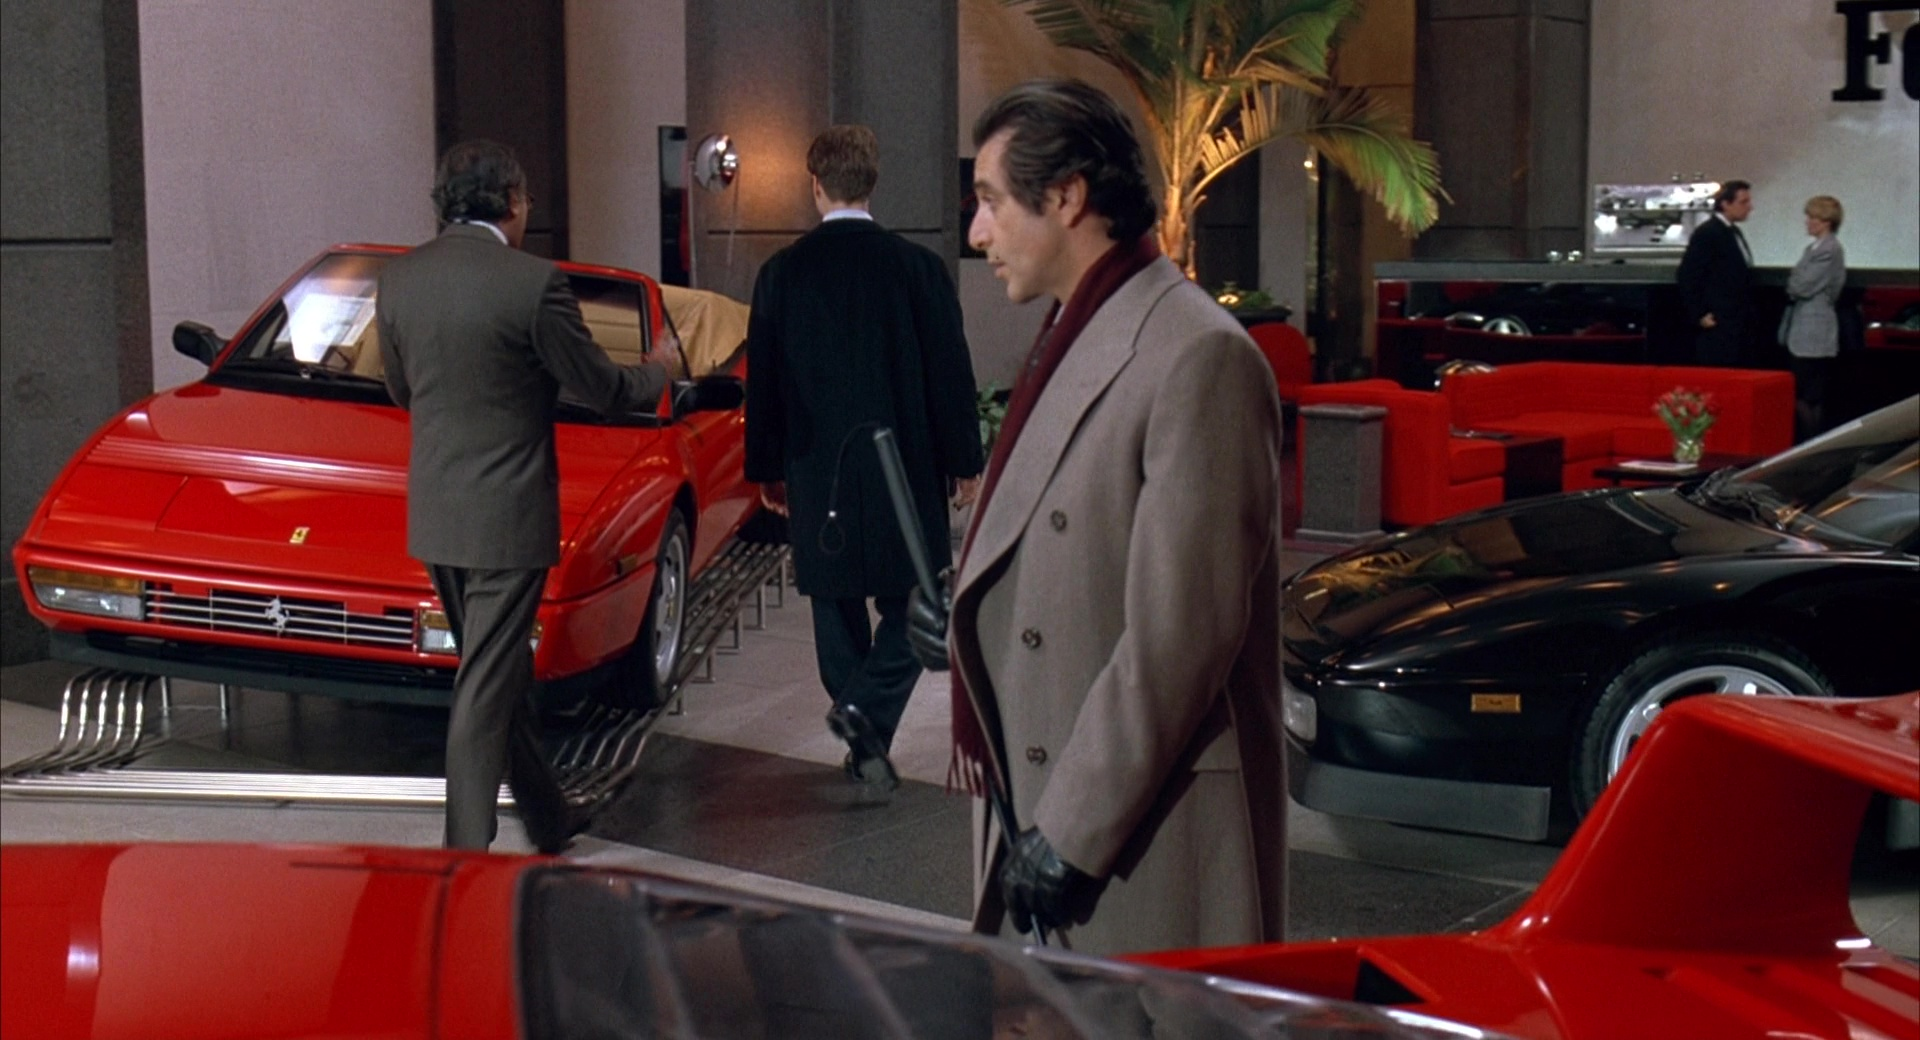 Ferrari Car Dealer Chris O E Donnell And Al Pacino In Scent Of A Woman